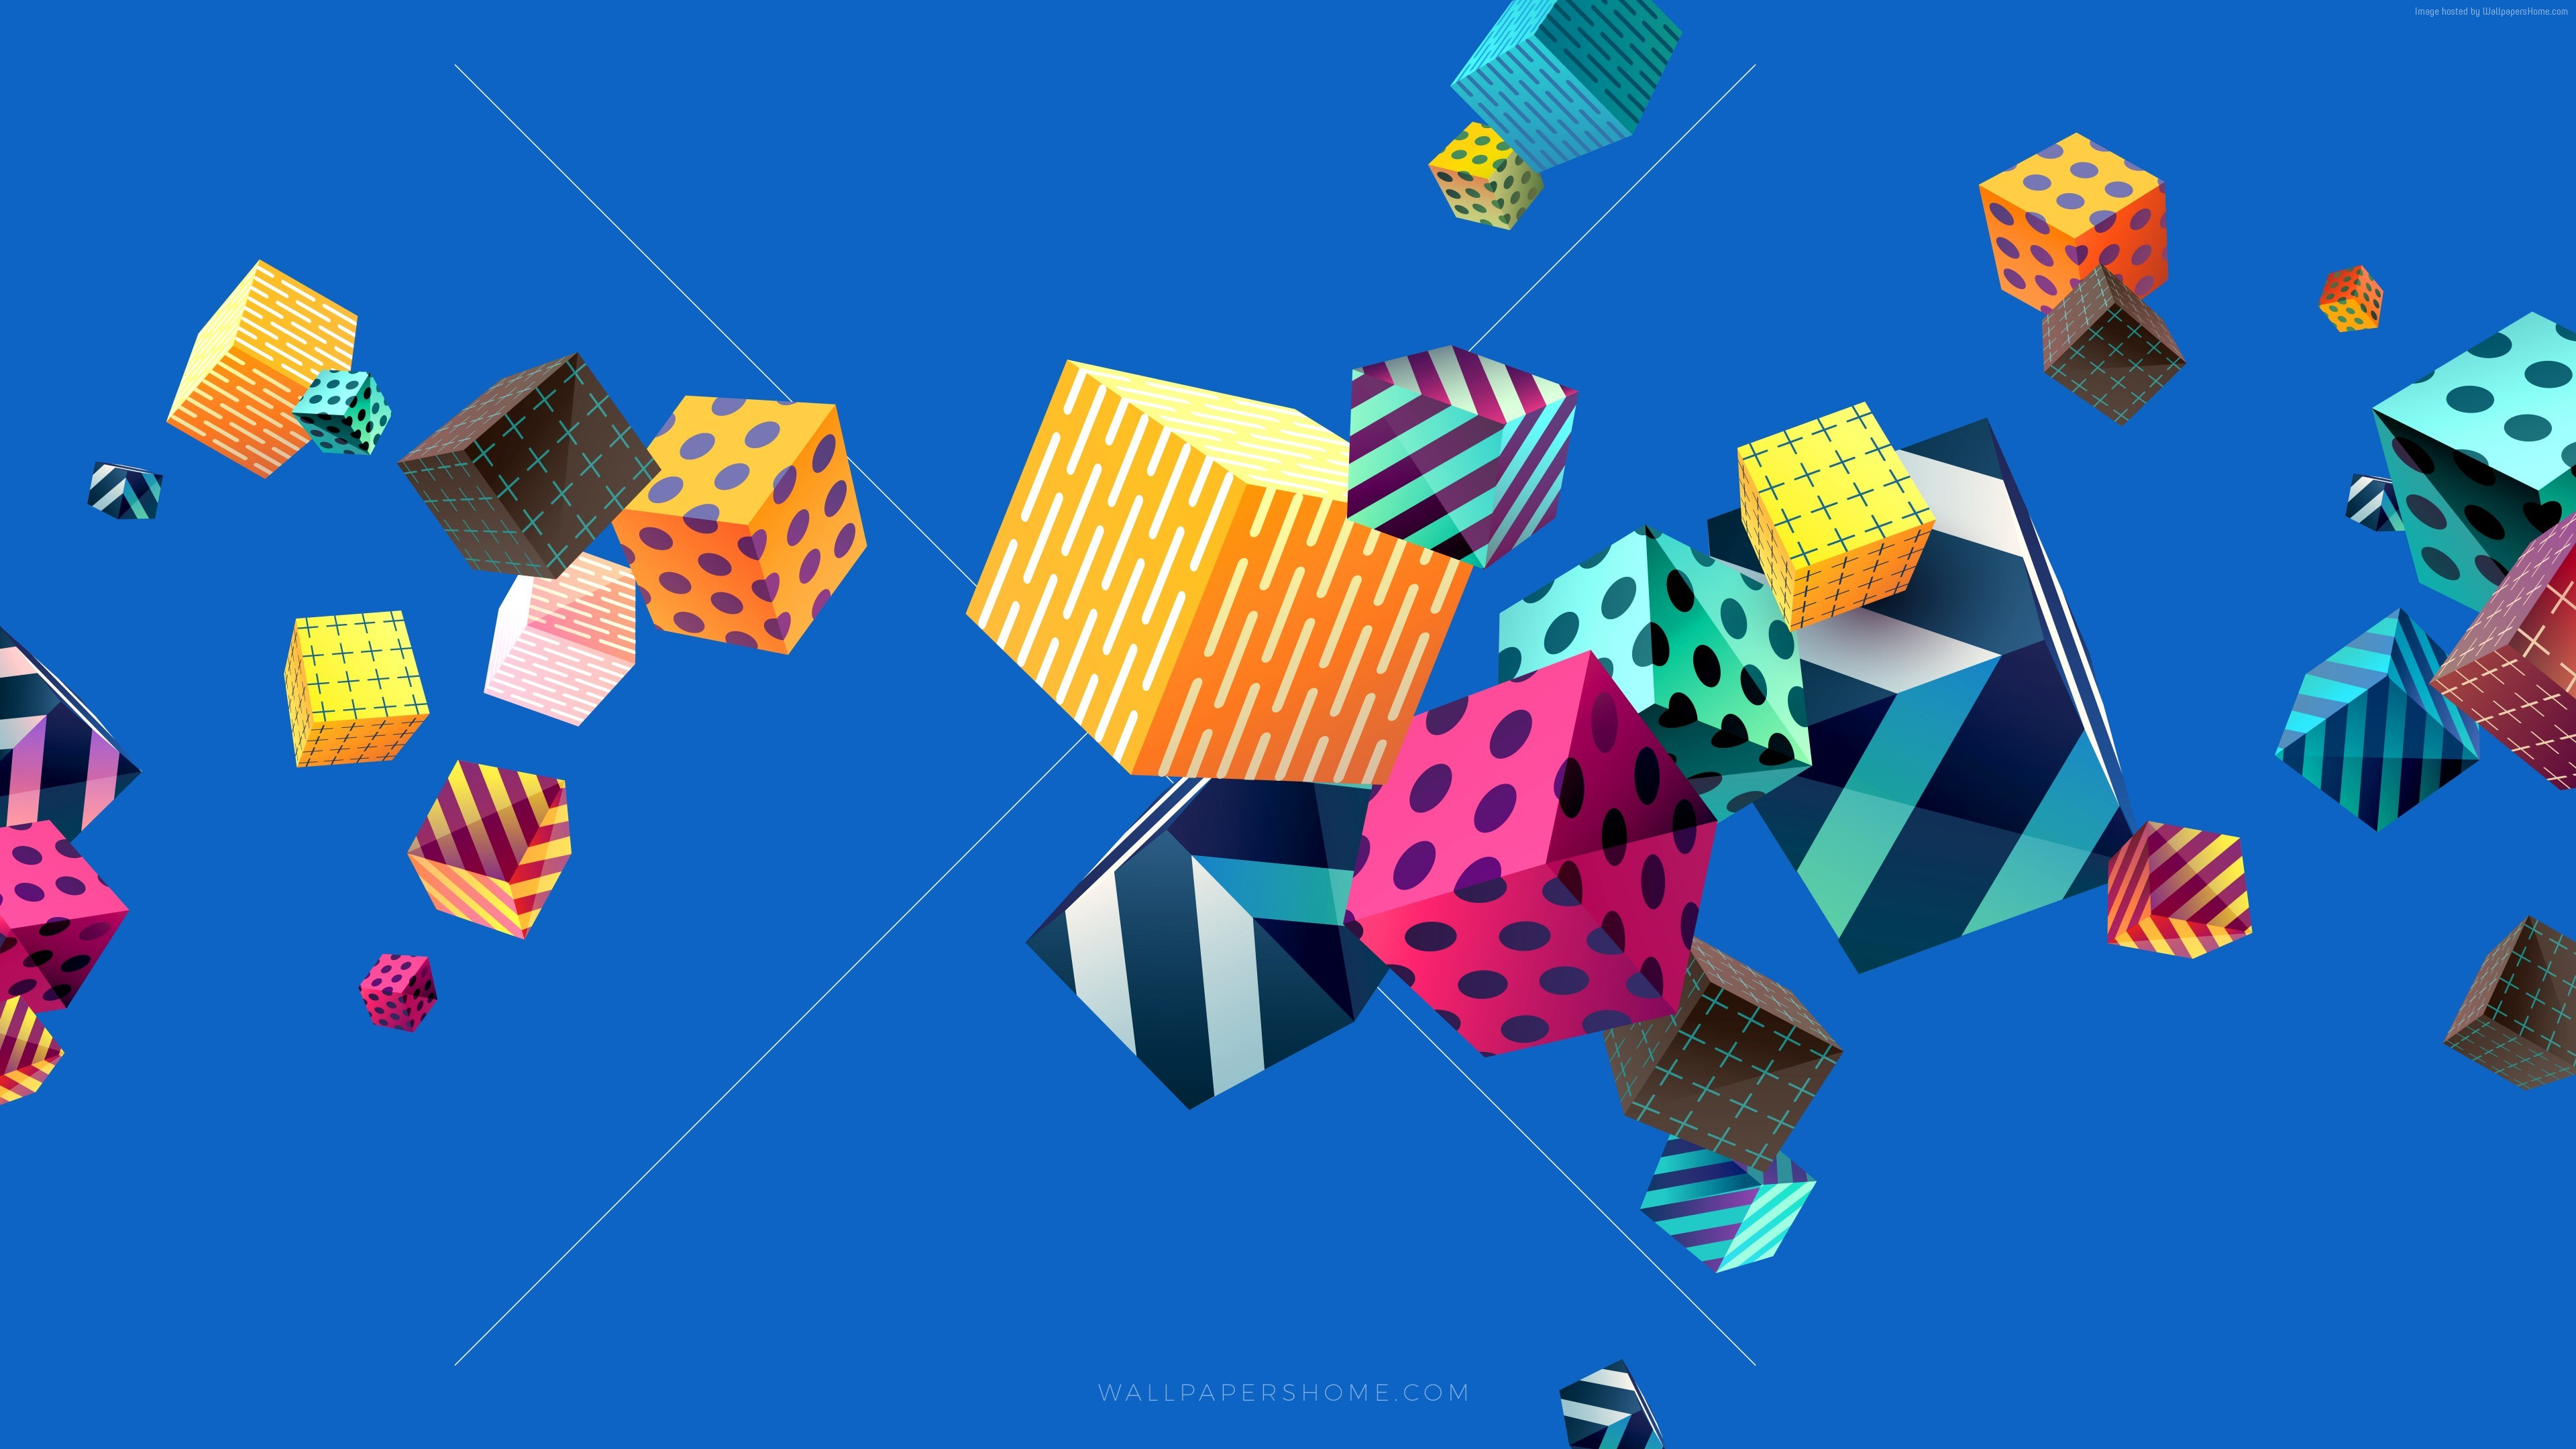 Cubes Colorful 4k, 5k, 8k, Abstract, Colorful, Cubes, - Colorful 4k Wallpaper Abstracts - HD Wallpaper